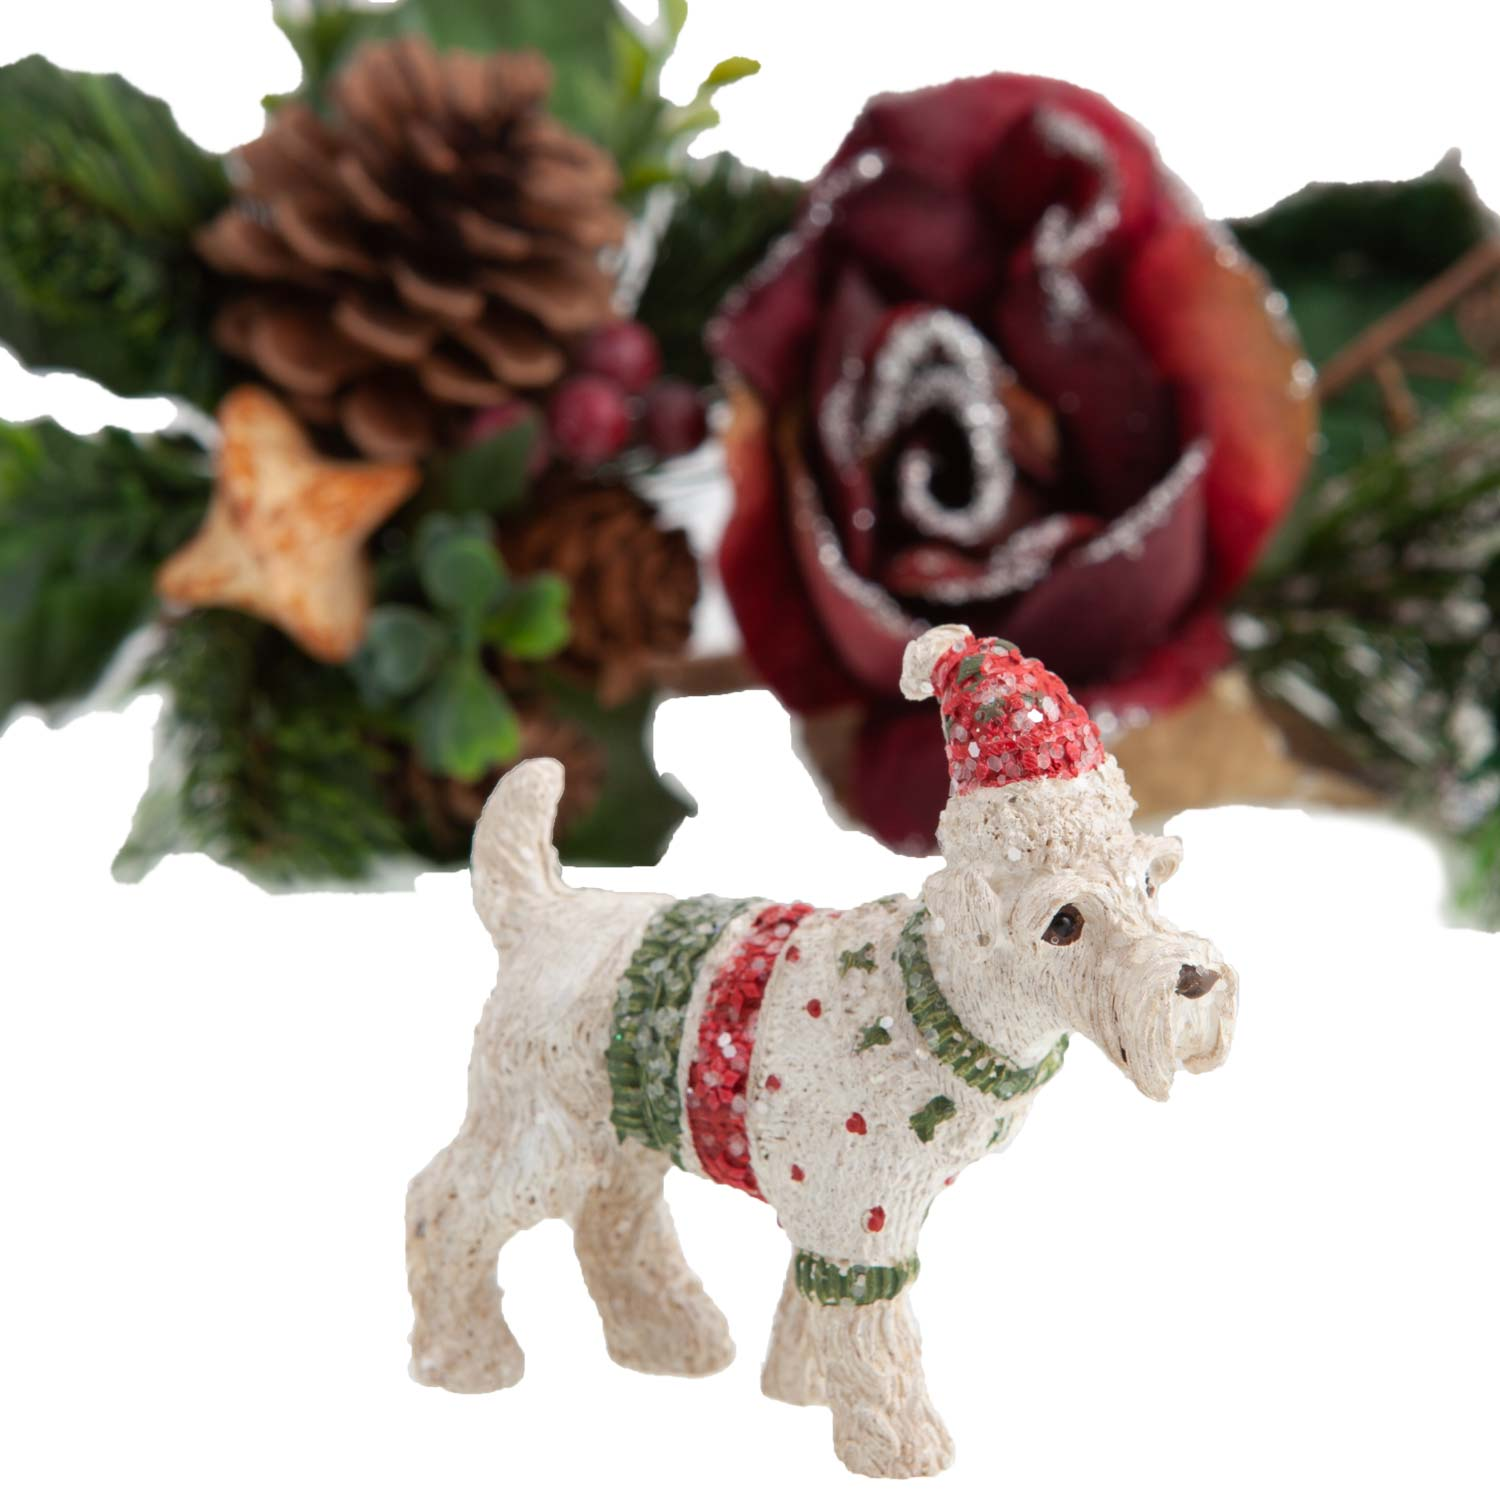 Dog Krazy Gifts - Schnauzer in Christmas Jumper Decoration - available from the Christmas Grotto at DogKrazyGifts.co.uk